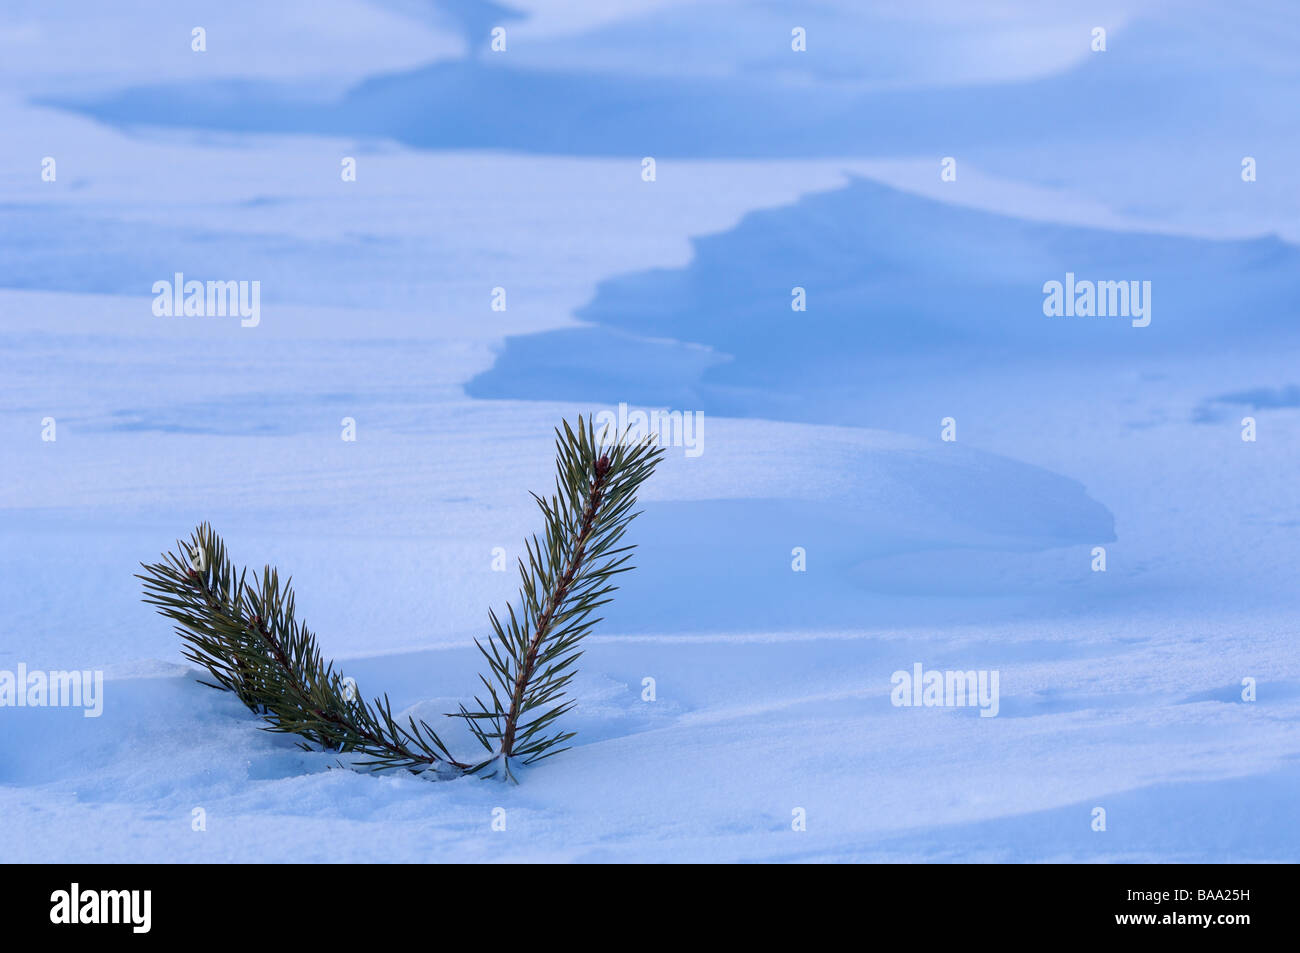 The branch from a spruce in the snow - Stock Image